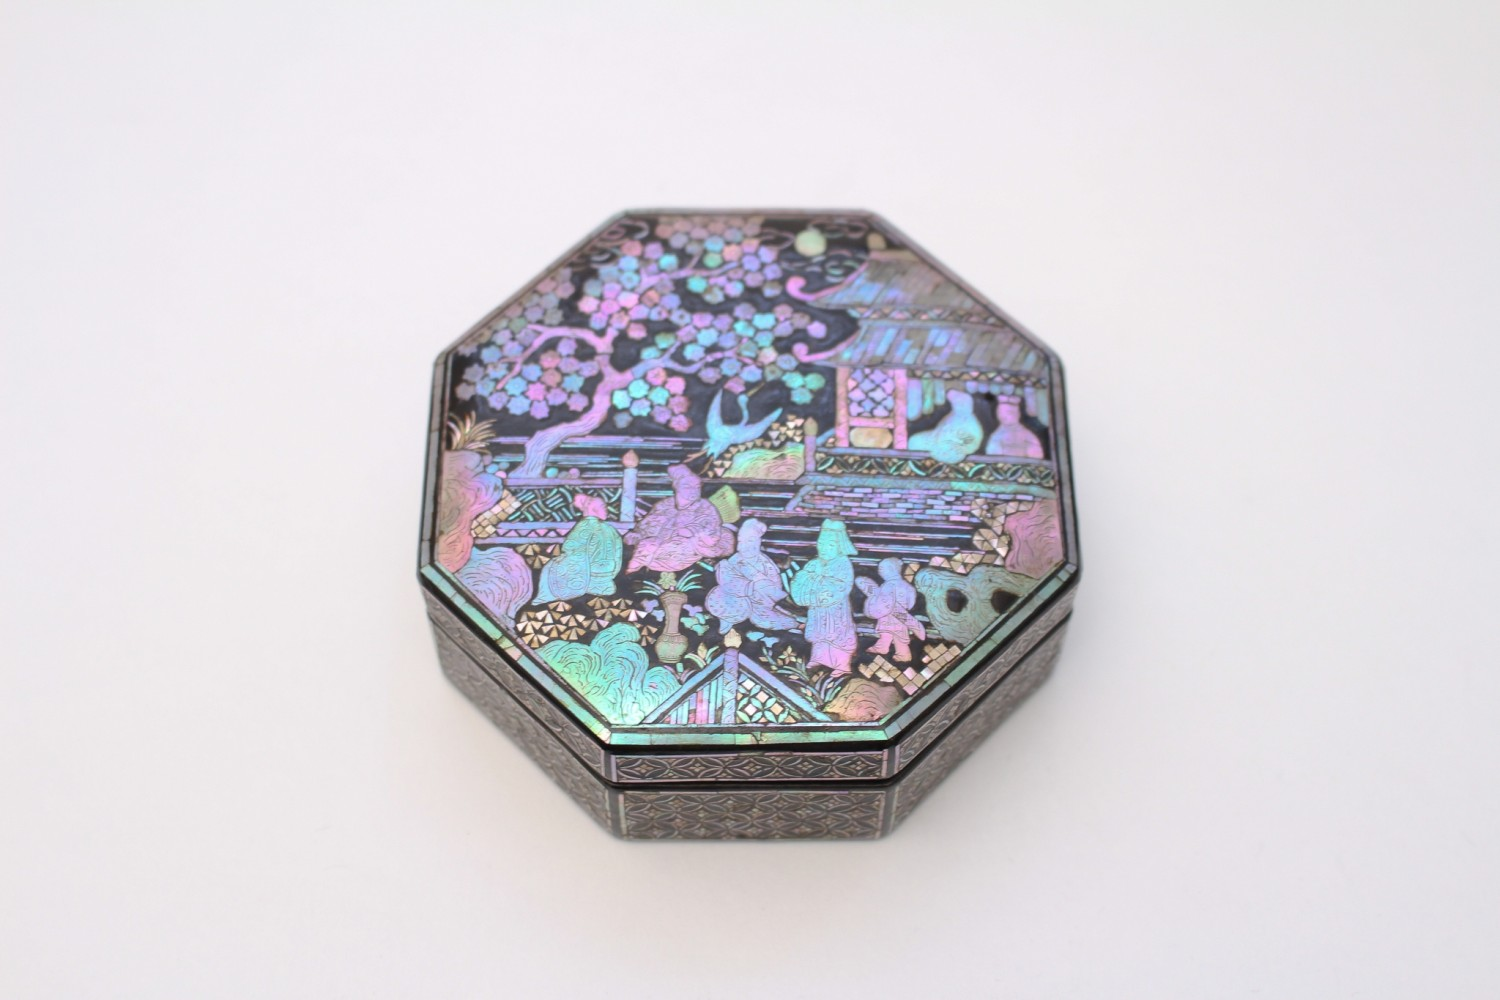 A mother-of-pearl inlaid lacquer box and cover (17th-18th century)